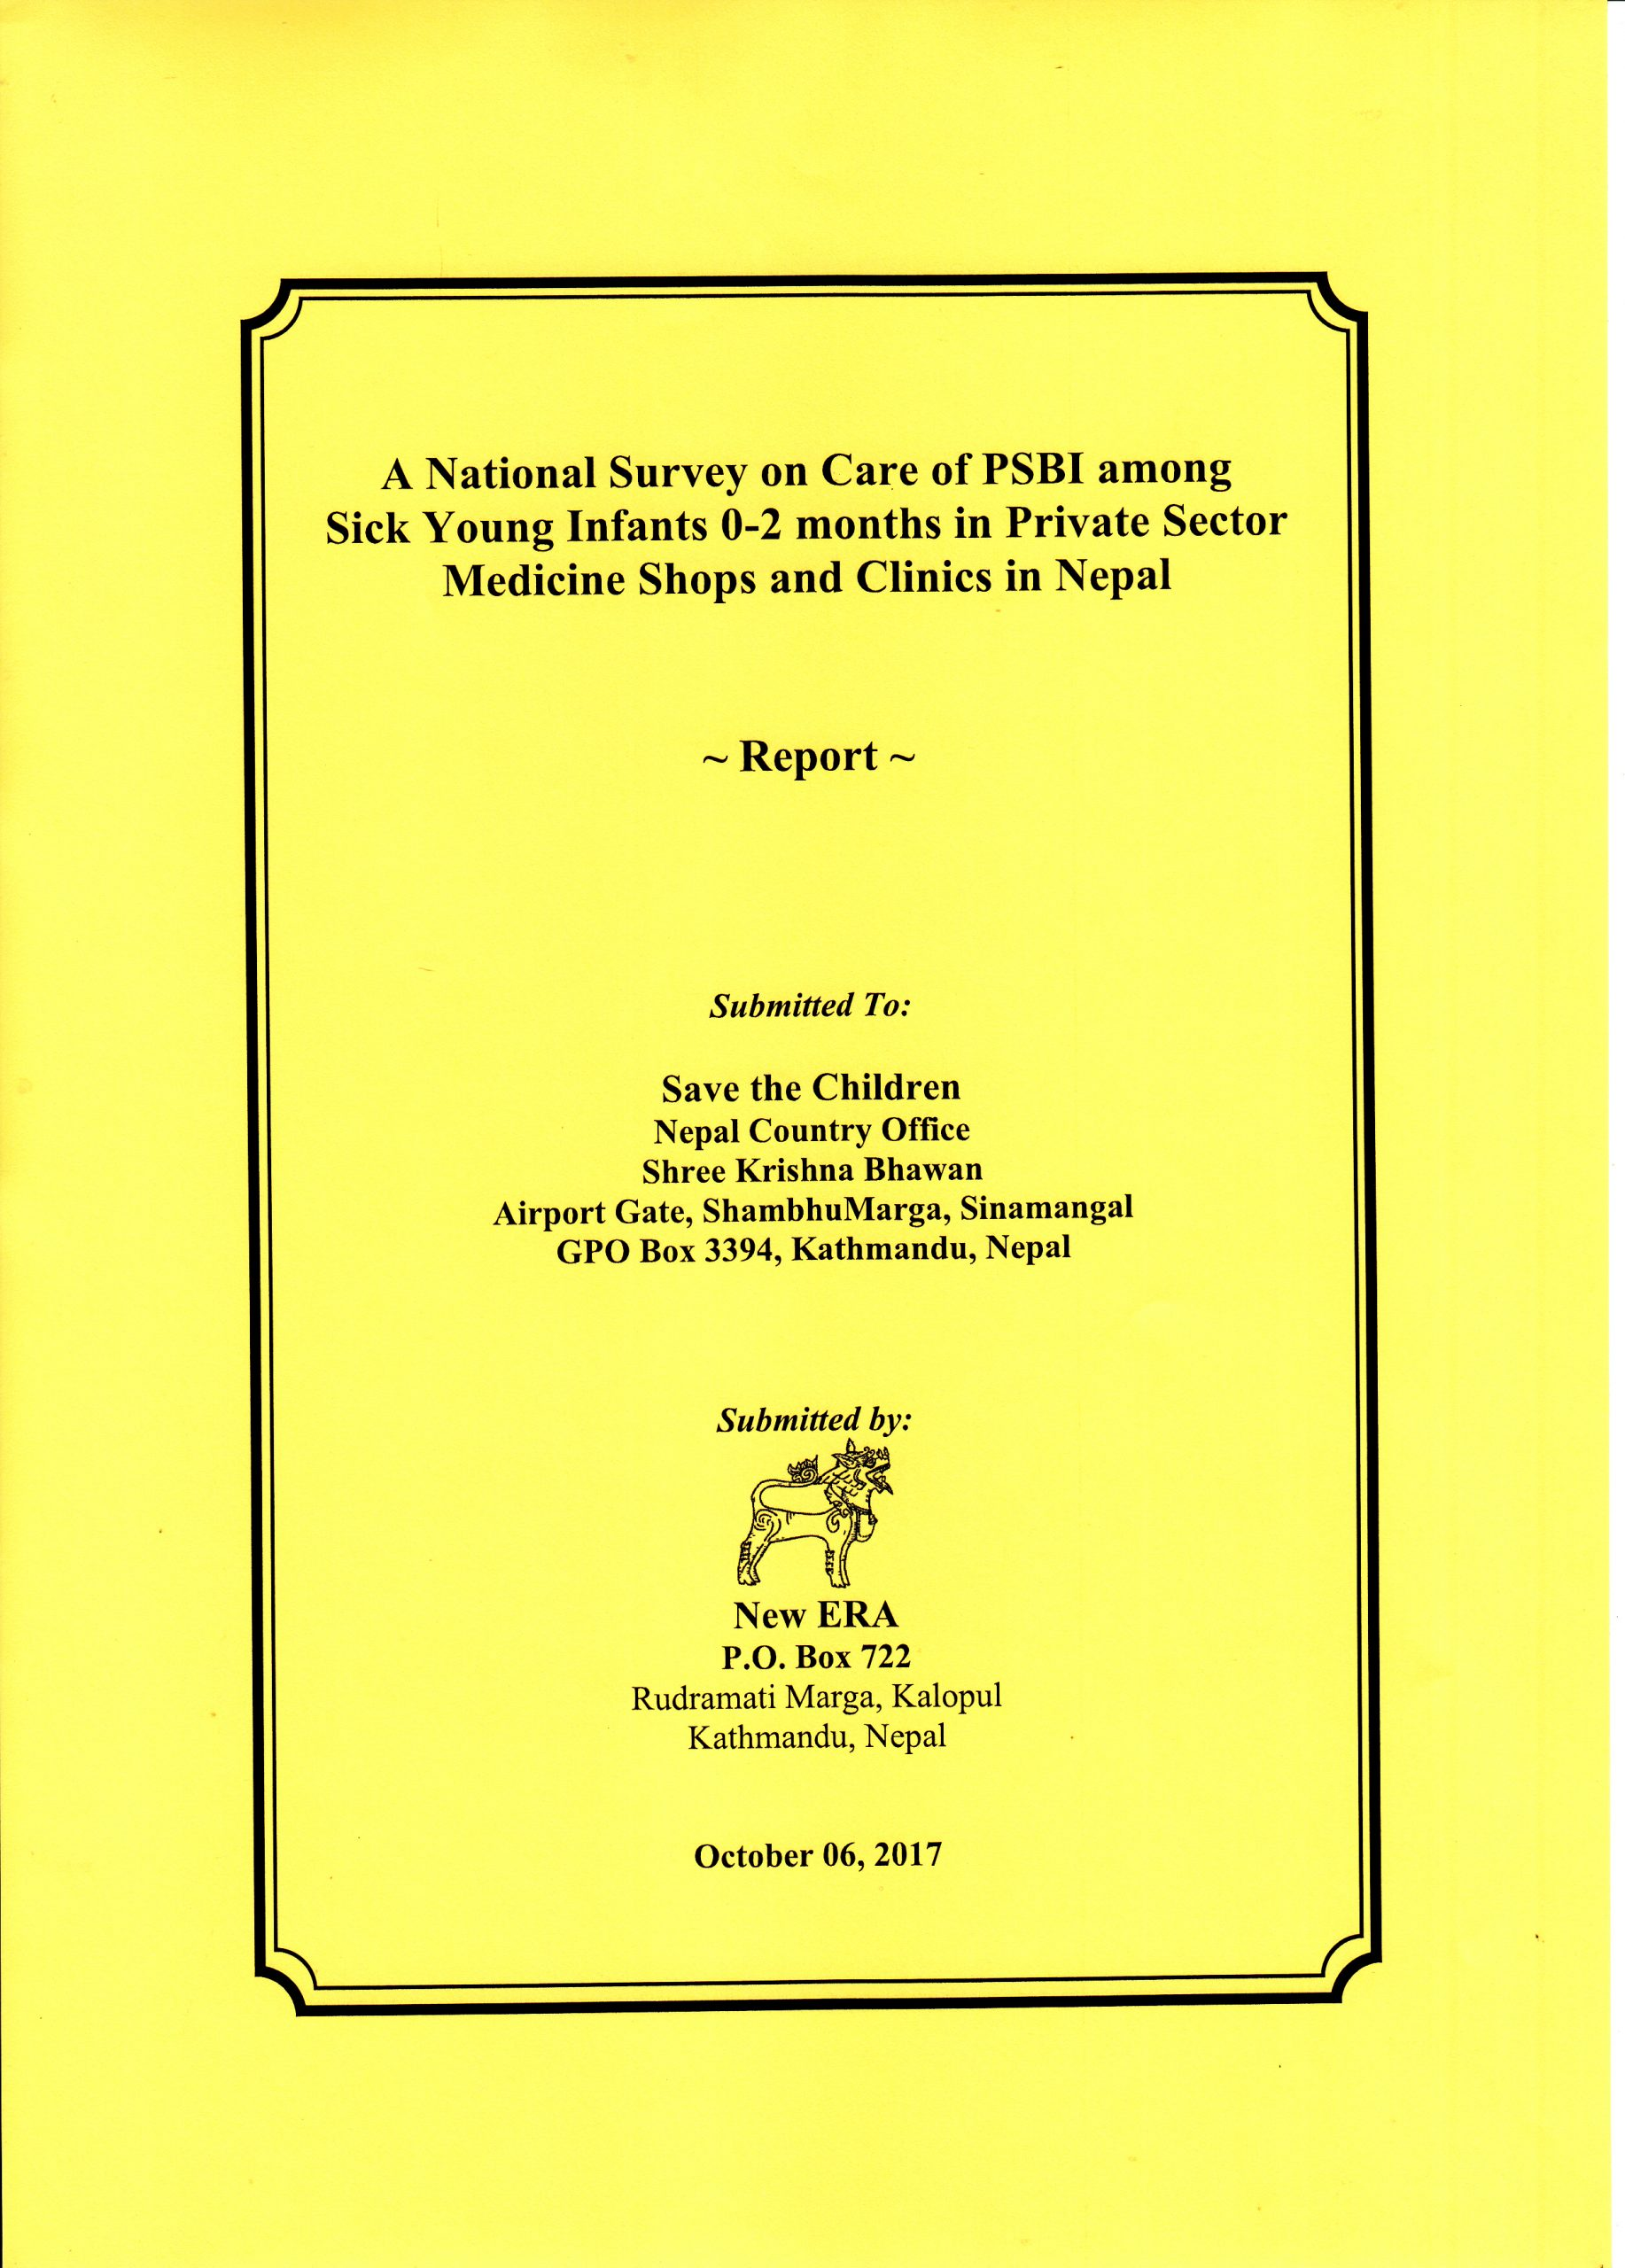 A National Survey on Care of PSBI among Sick Young Infants 0-2 months in Private Sector Medical Shops and Clinics in Nepal